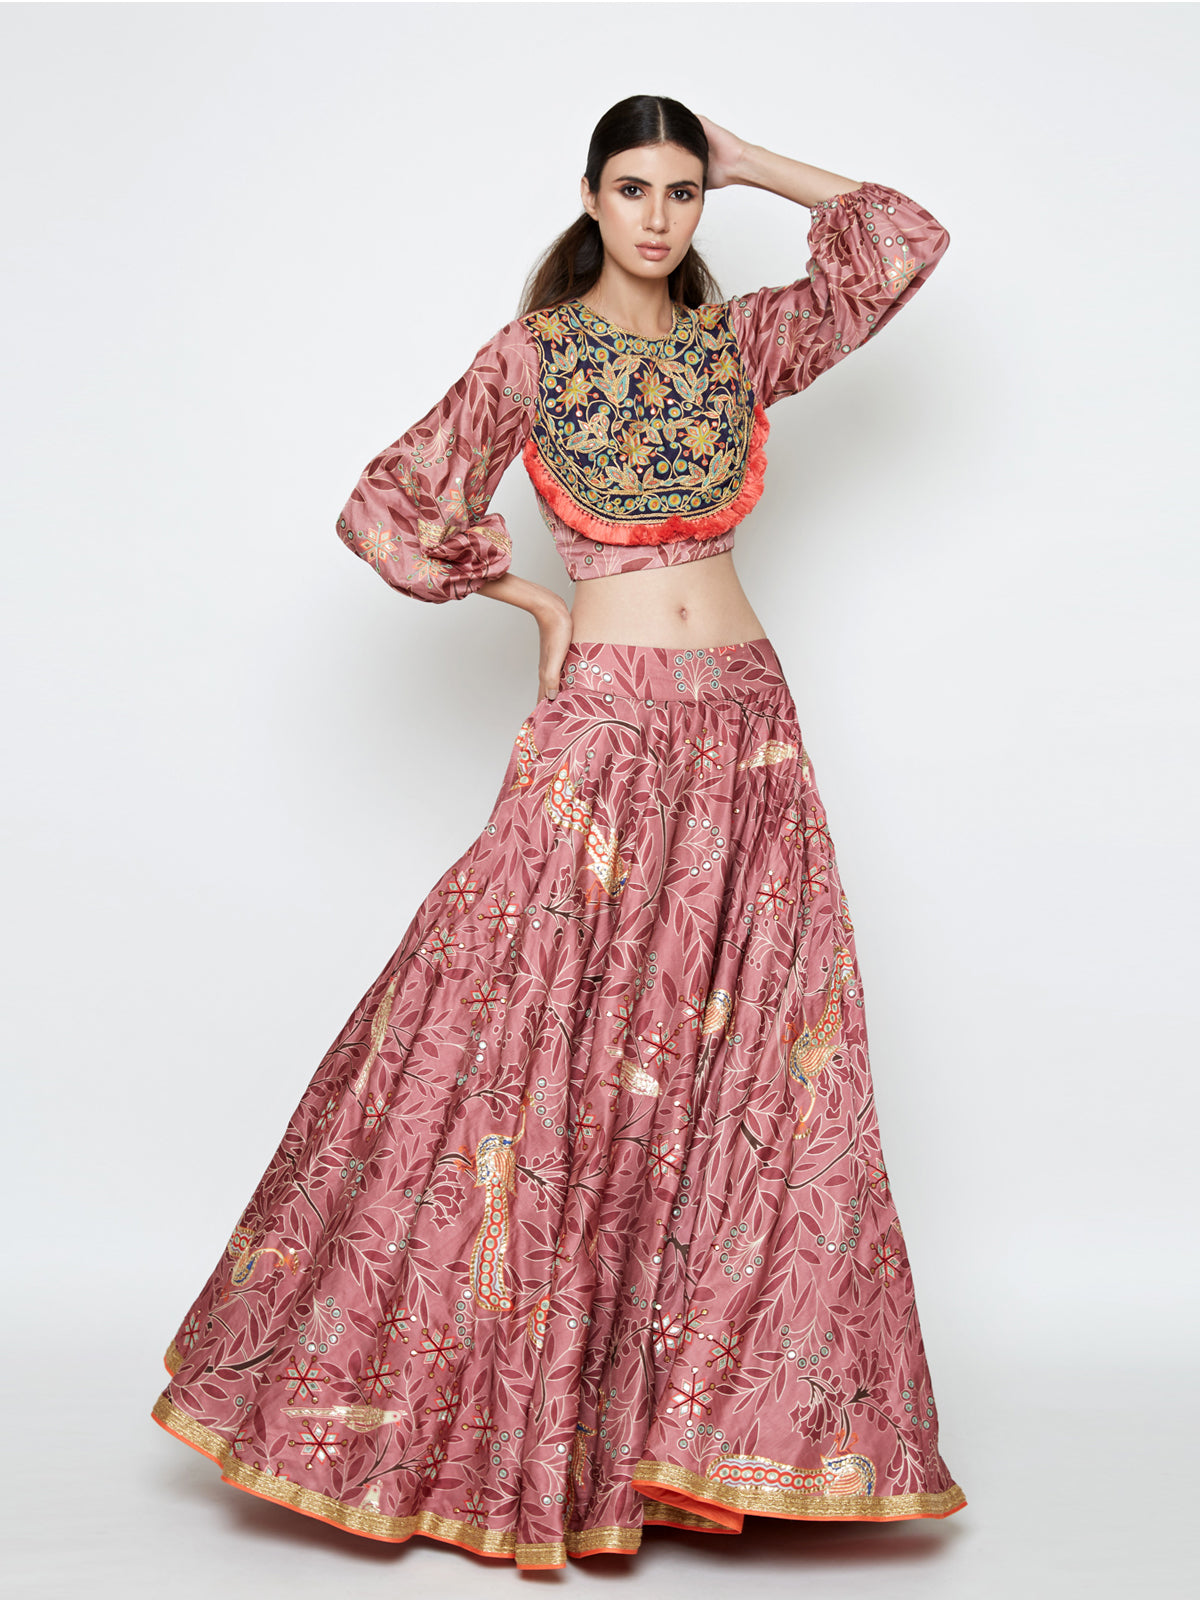 MORBAGH ROSE PINK EMBROIDED LEHENGA WITH CROP TOP